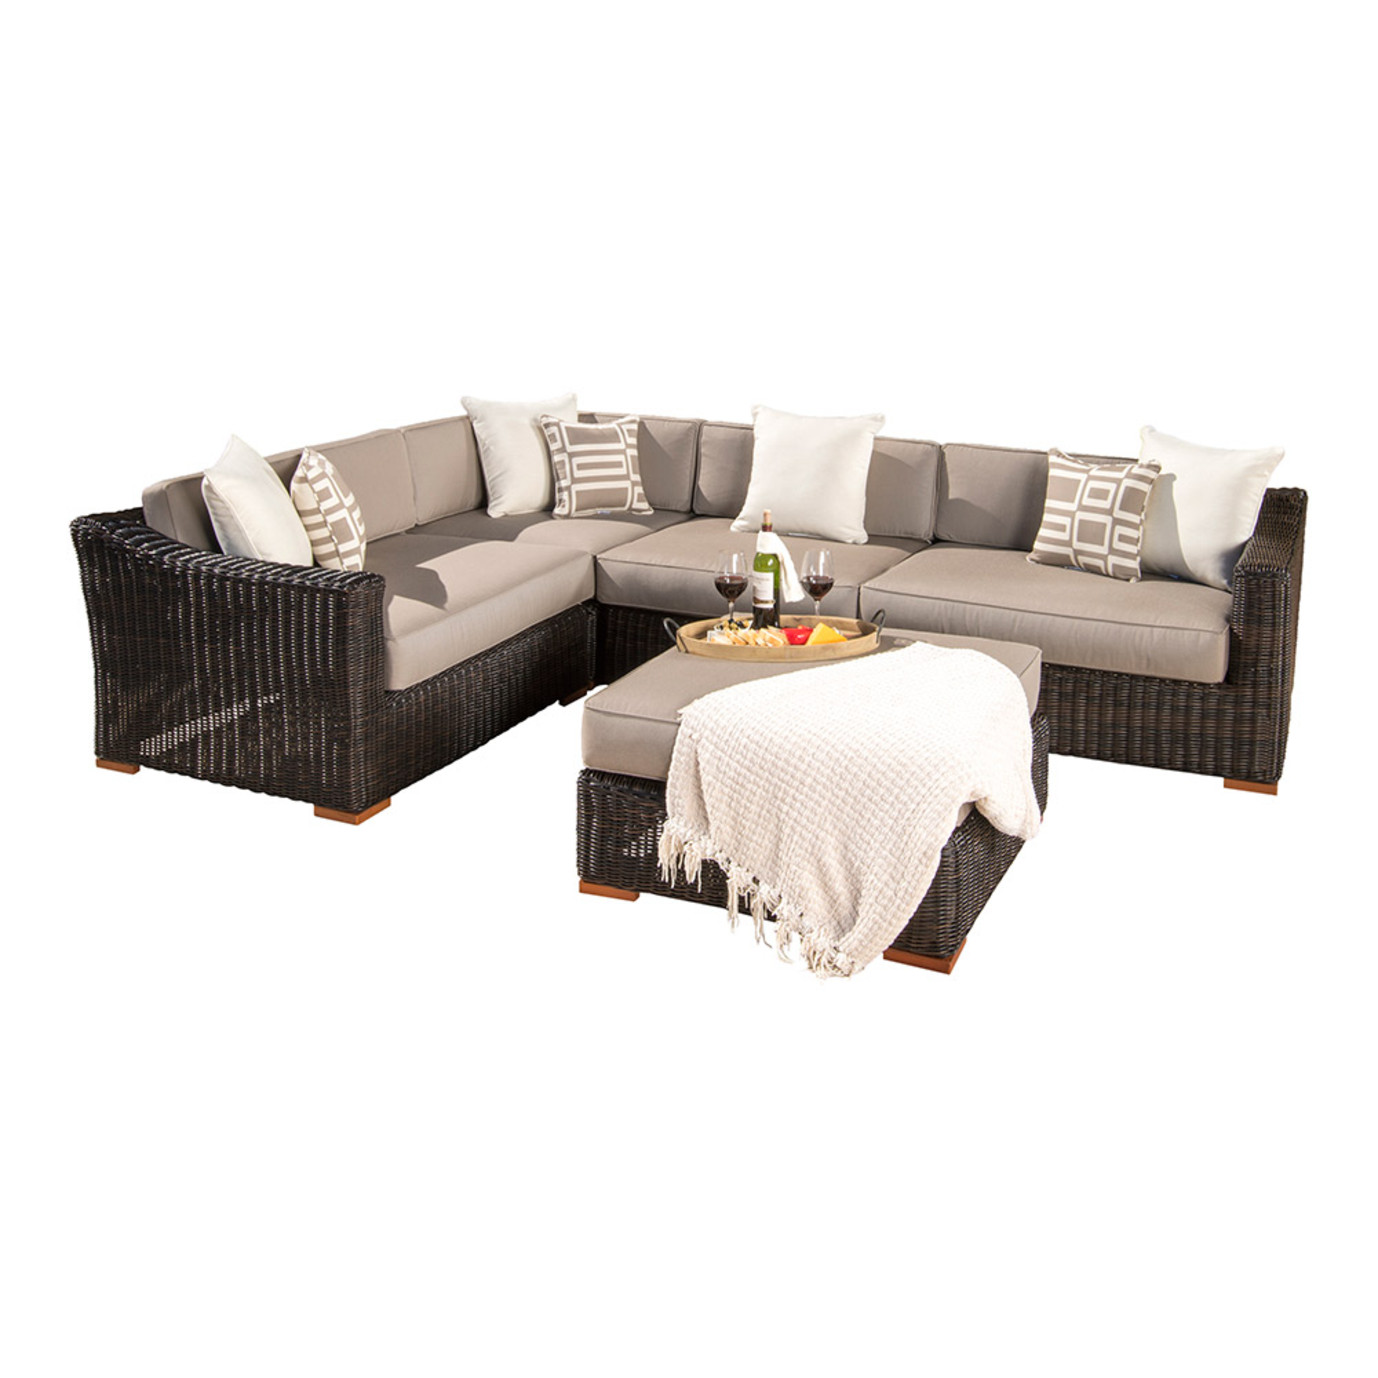 Resort™ 5pc Sectional & Ottoman Set - Espresso/Frank Stone